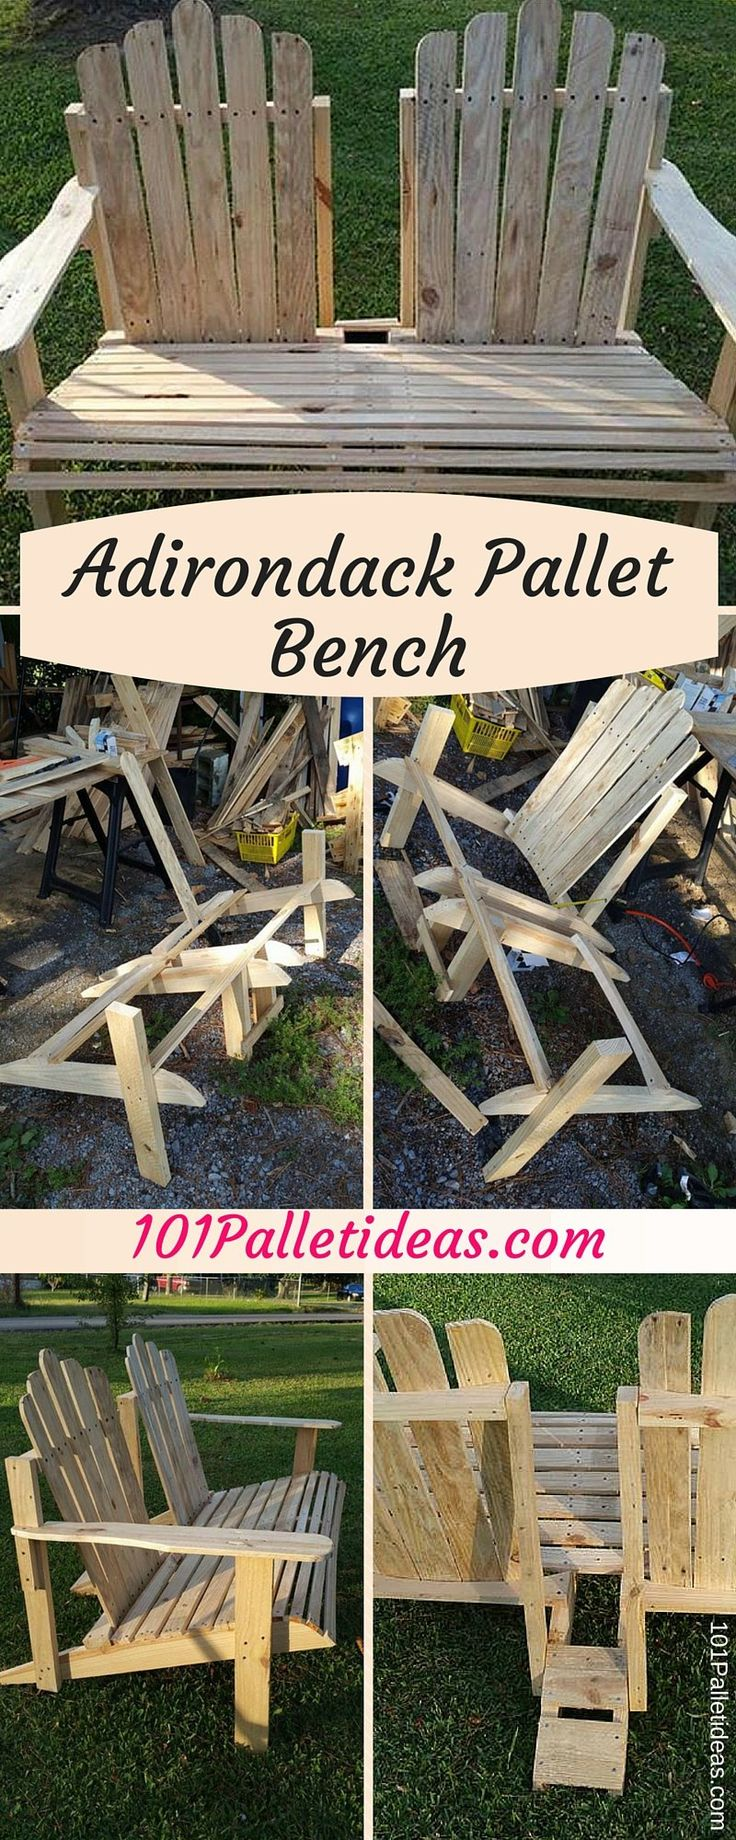 Diy comfortable pallet adirondack chair 101 pallets - Get Your Hands Onto This Diy Pallet Adirondack Bench By Messing A Little Bit With Pallets Physically